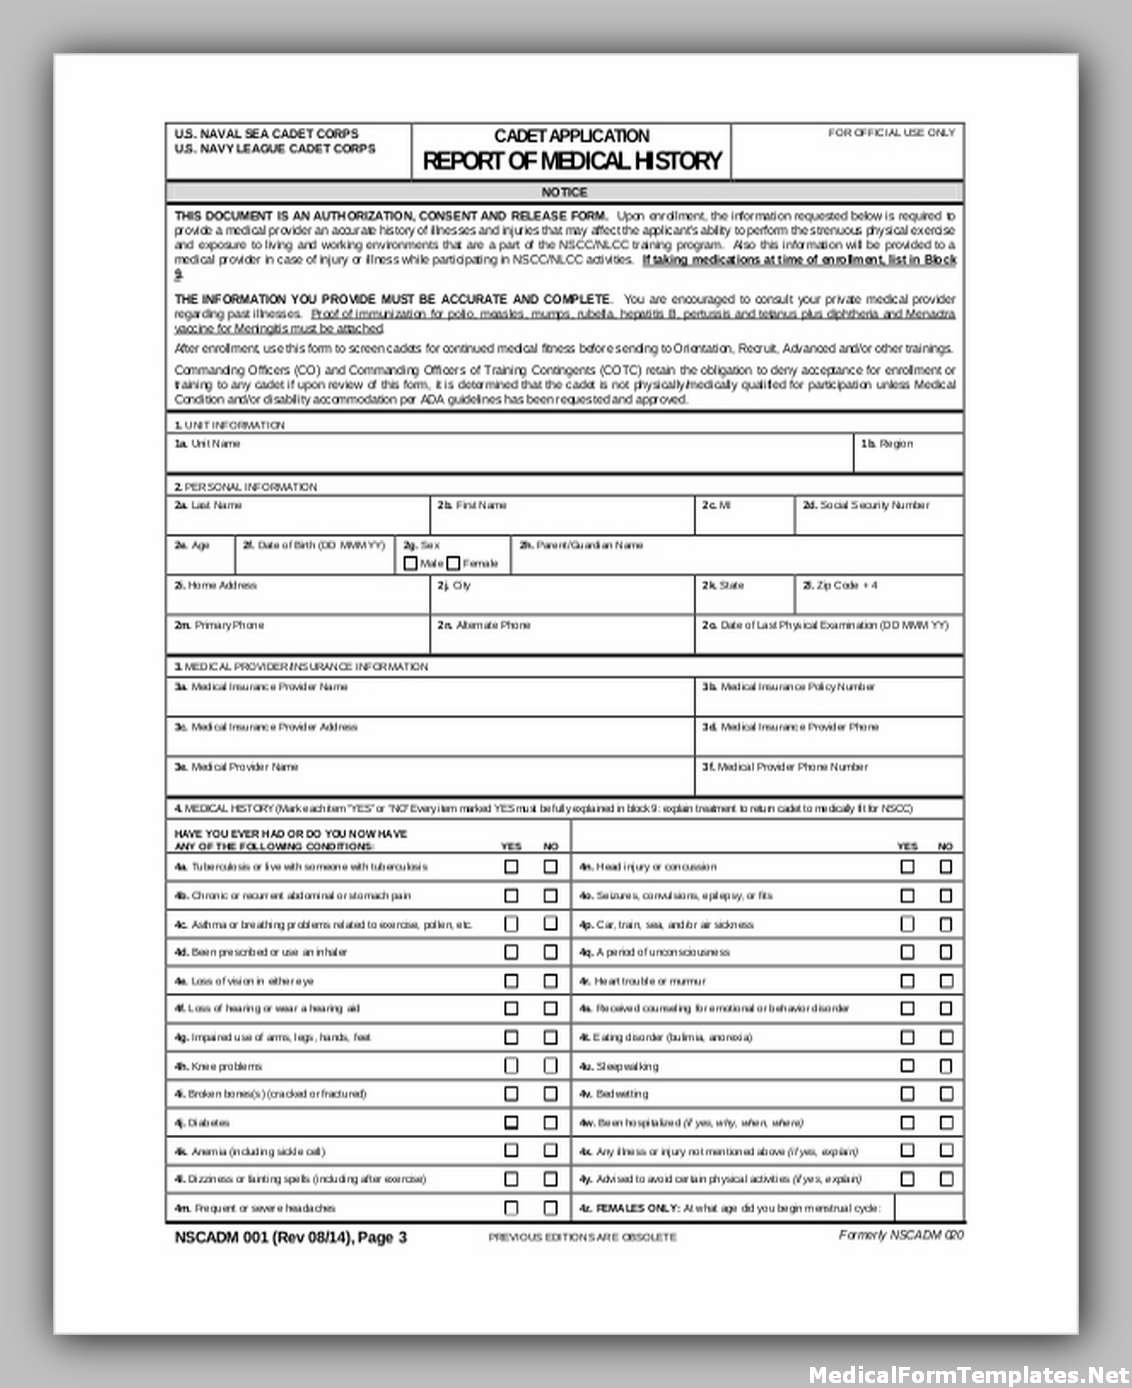 Navy medical record request form